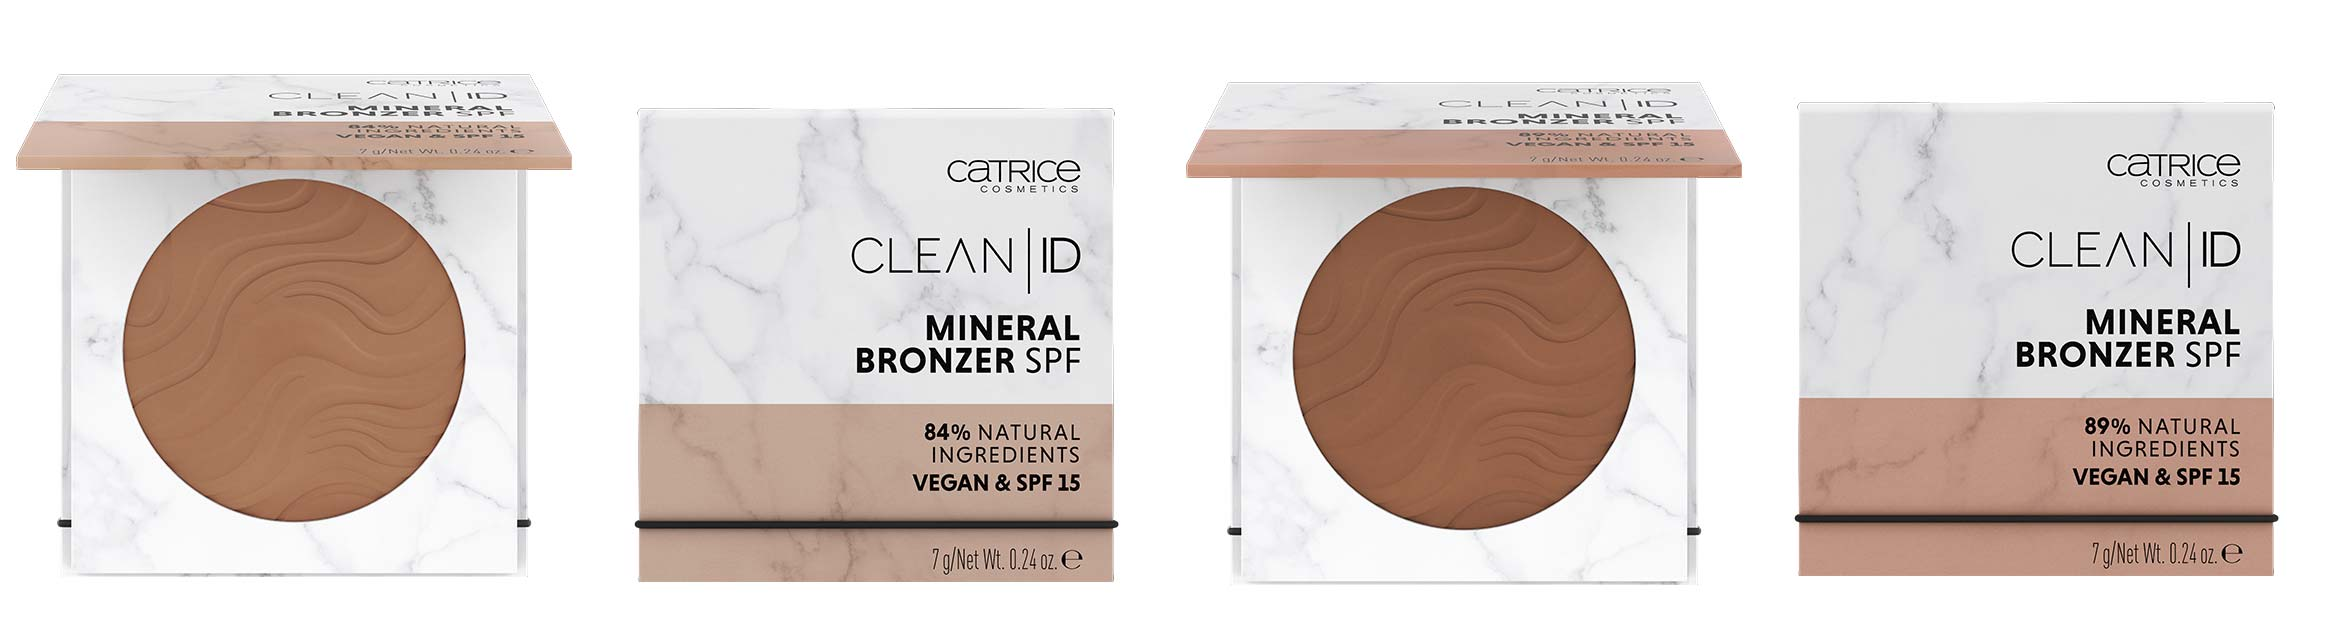 catrice-clean-id-mineral-bronzer